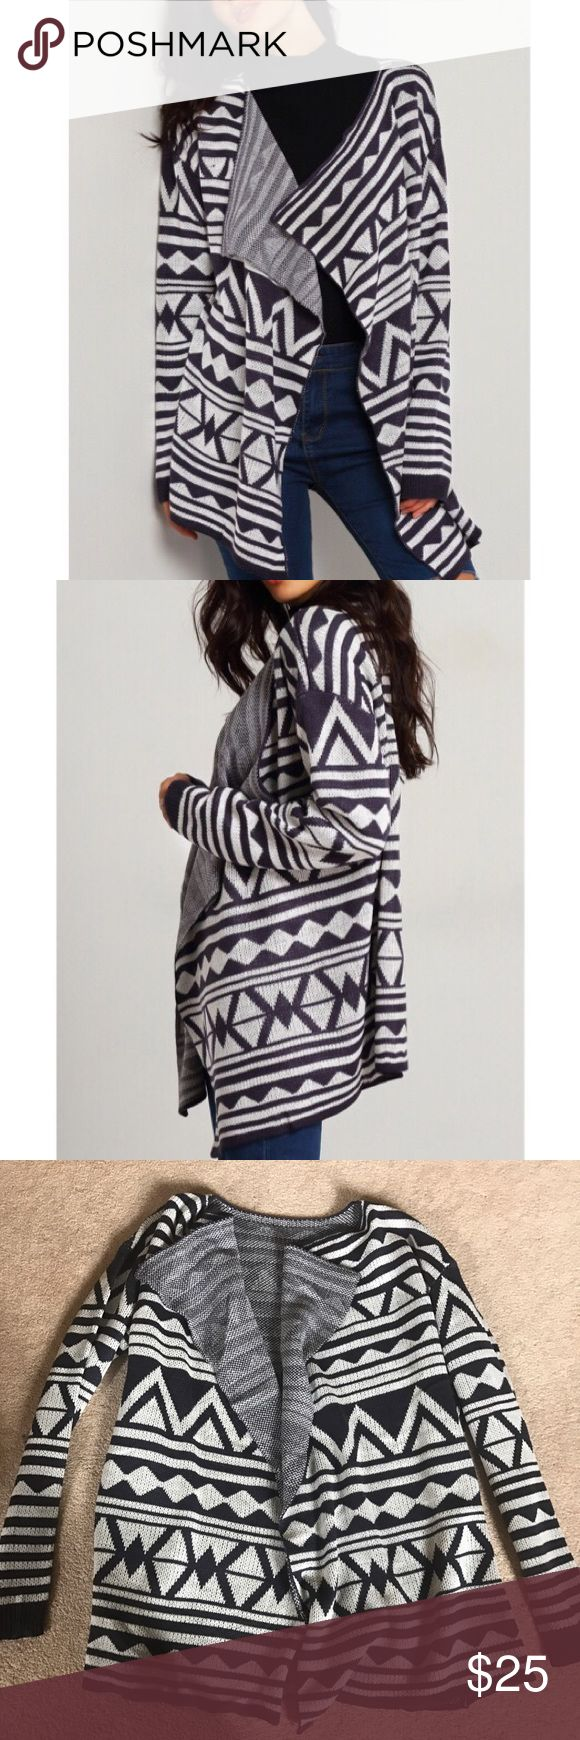 Tribal Cardigan Brand New! Francesca's Collections Sweaters Cardigans